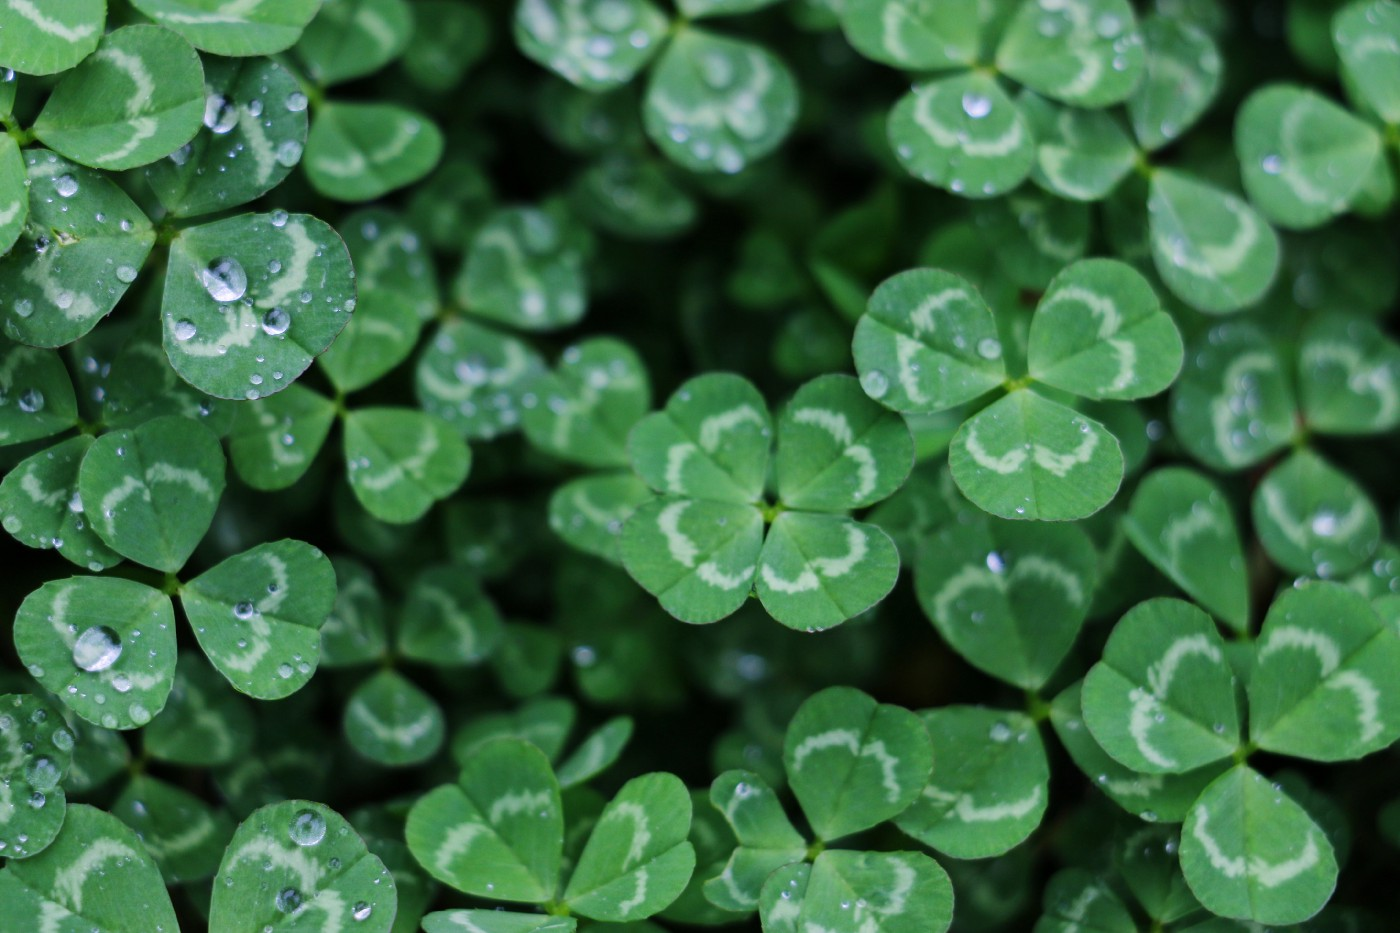 A four leaf clover stands out in a field of three leaved clovers.